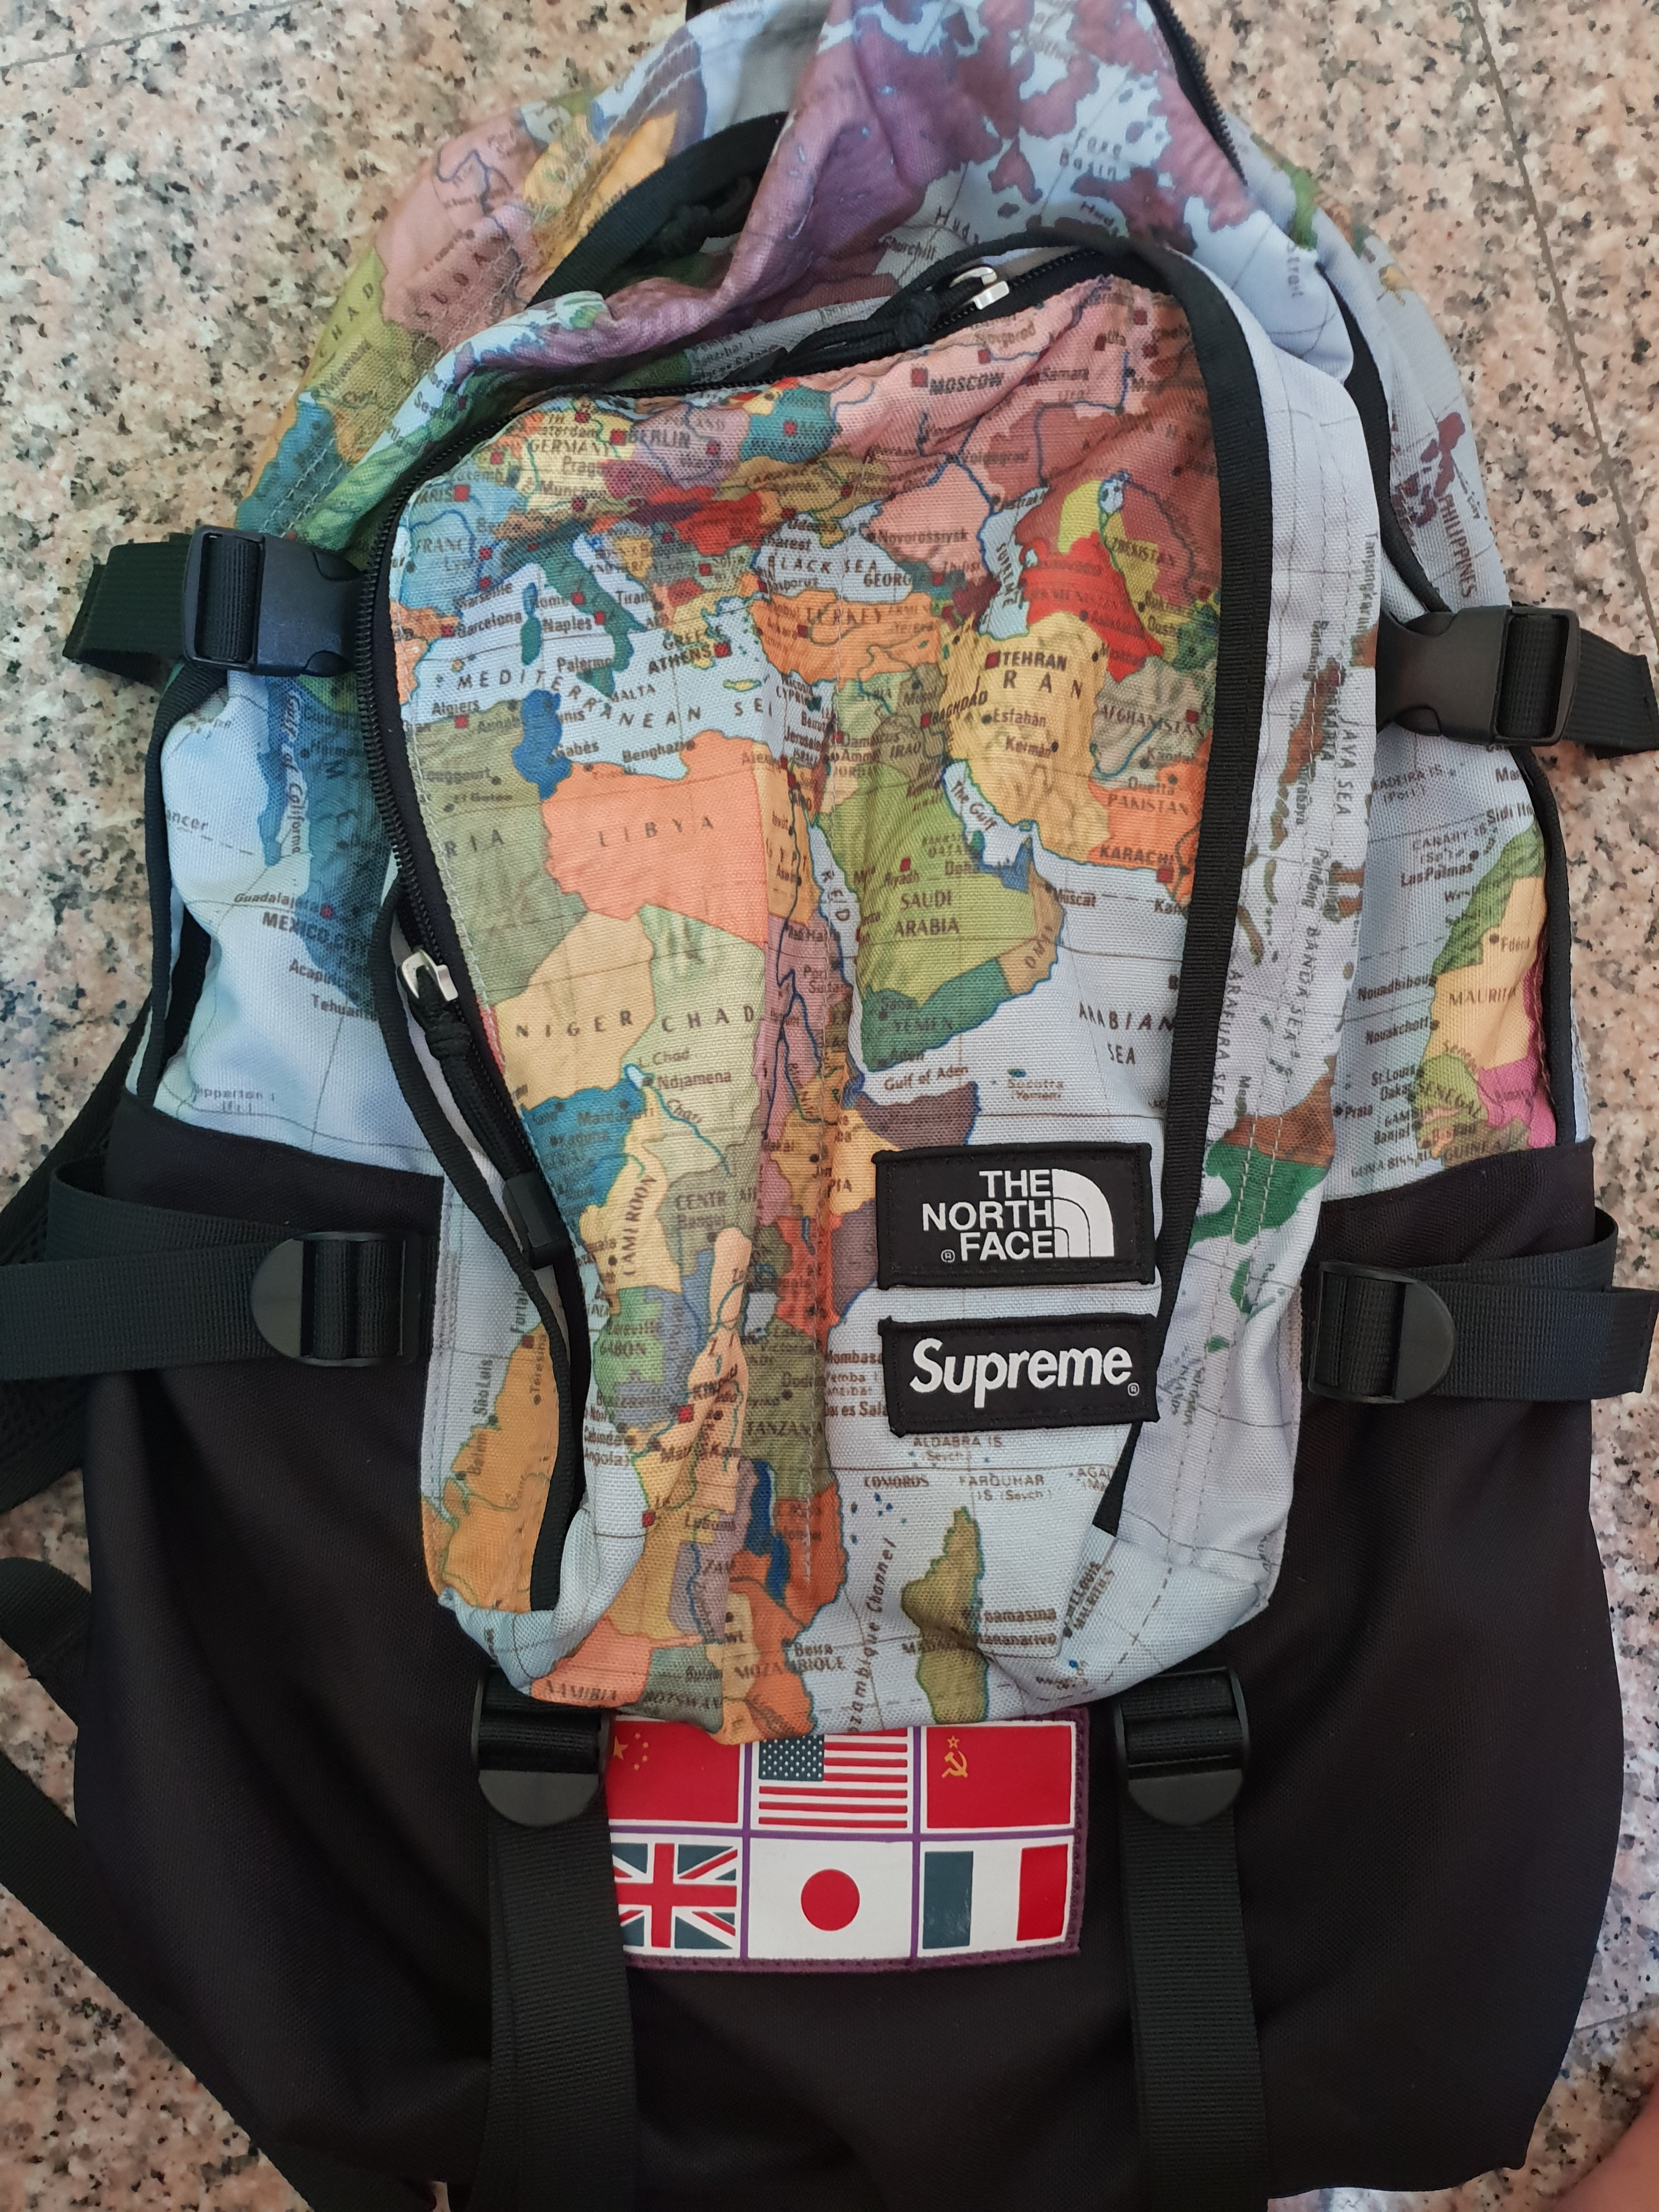 4054312925c 2014 Supreme x The North Face Expedition Backpack World Map Print, Men's  Fashion, Bags & Wallets, Backpacks on Carousell